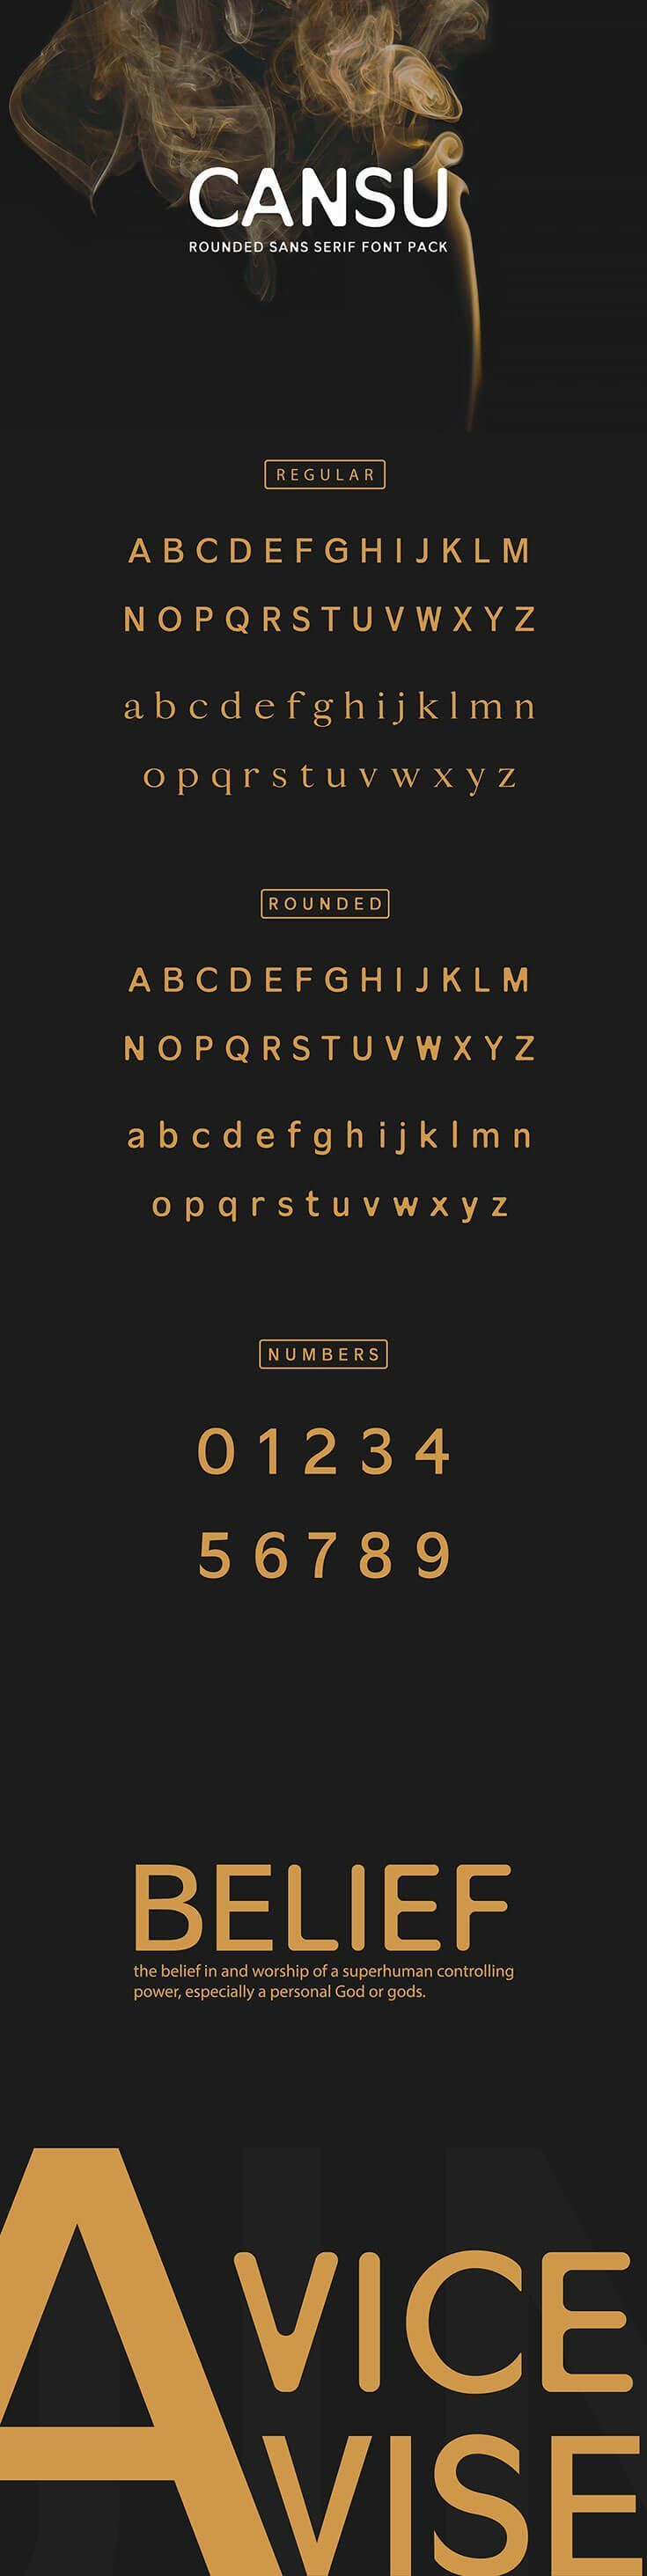 Download Free Cansu Sans Serif Font Pack is a classy minimal ...